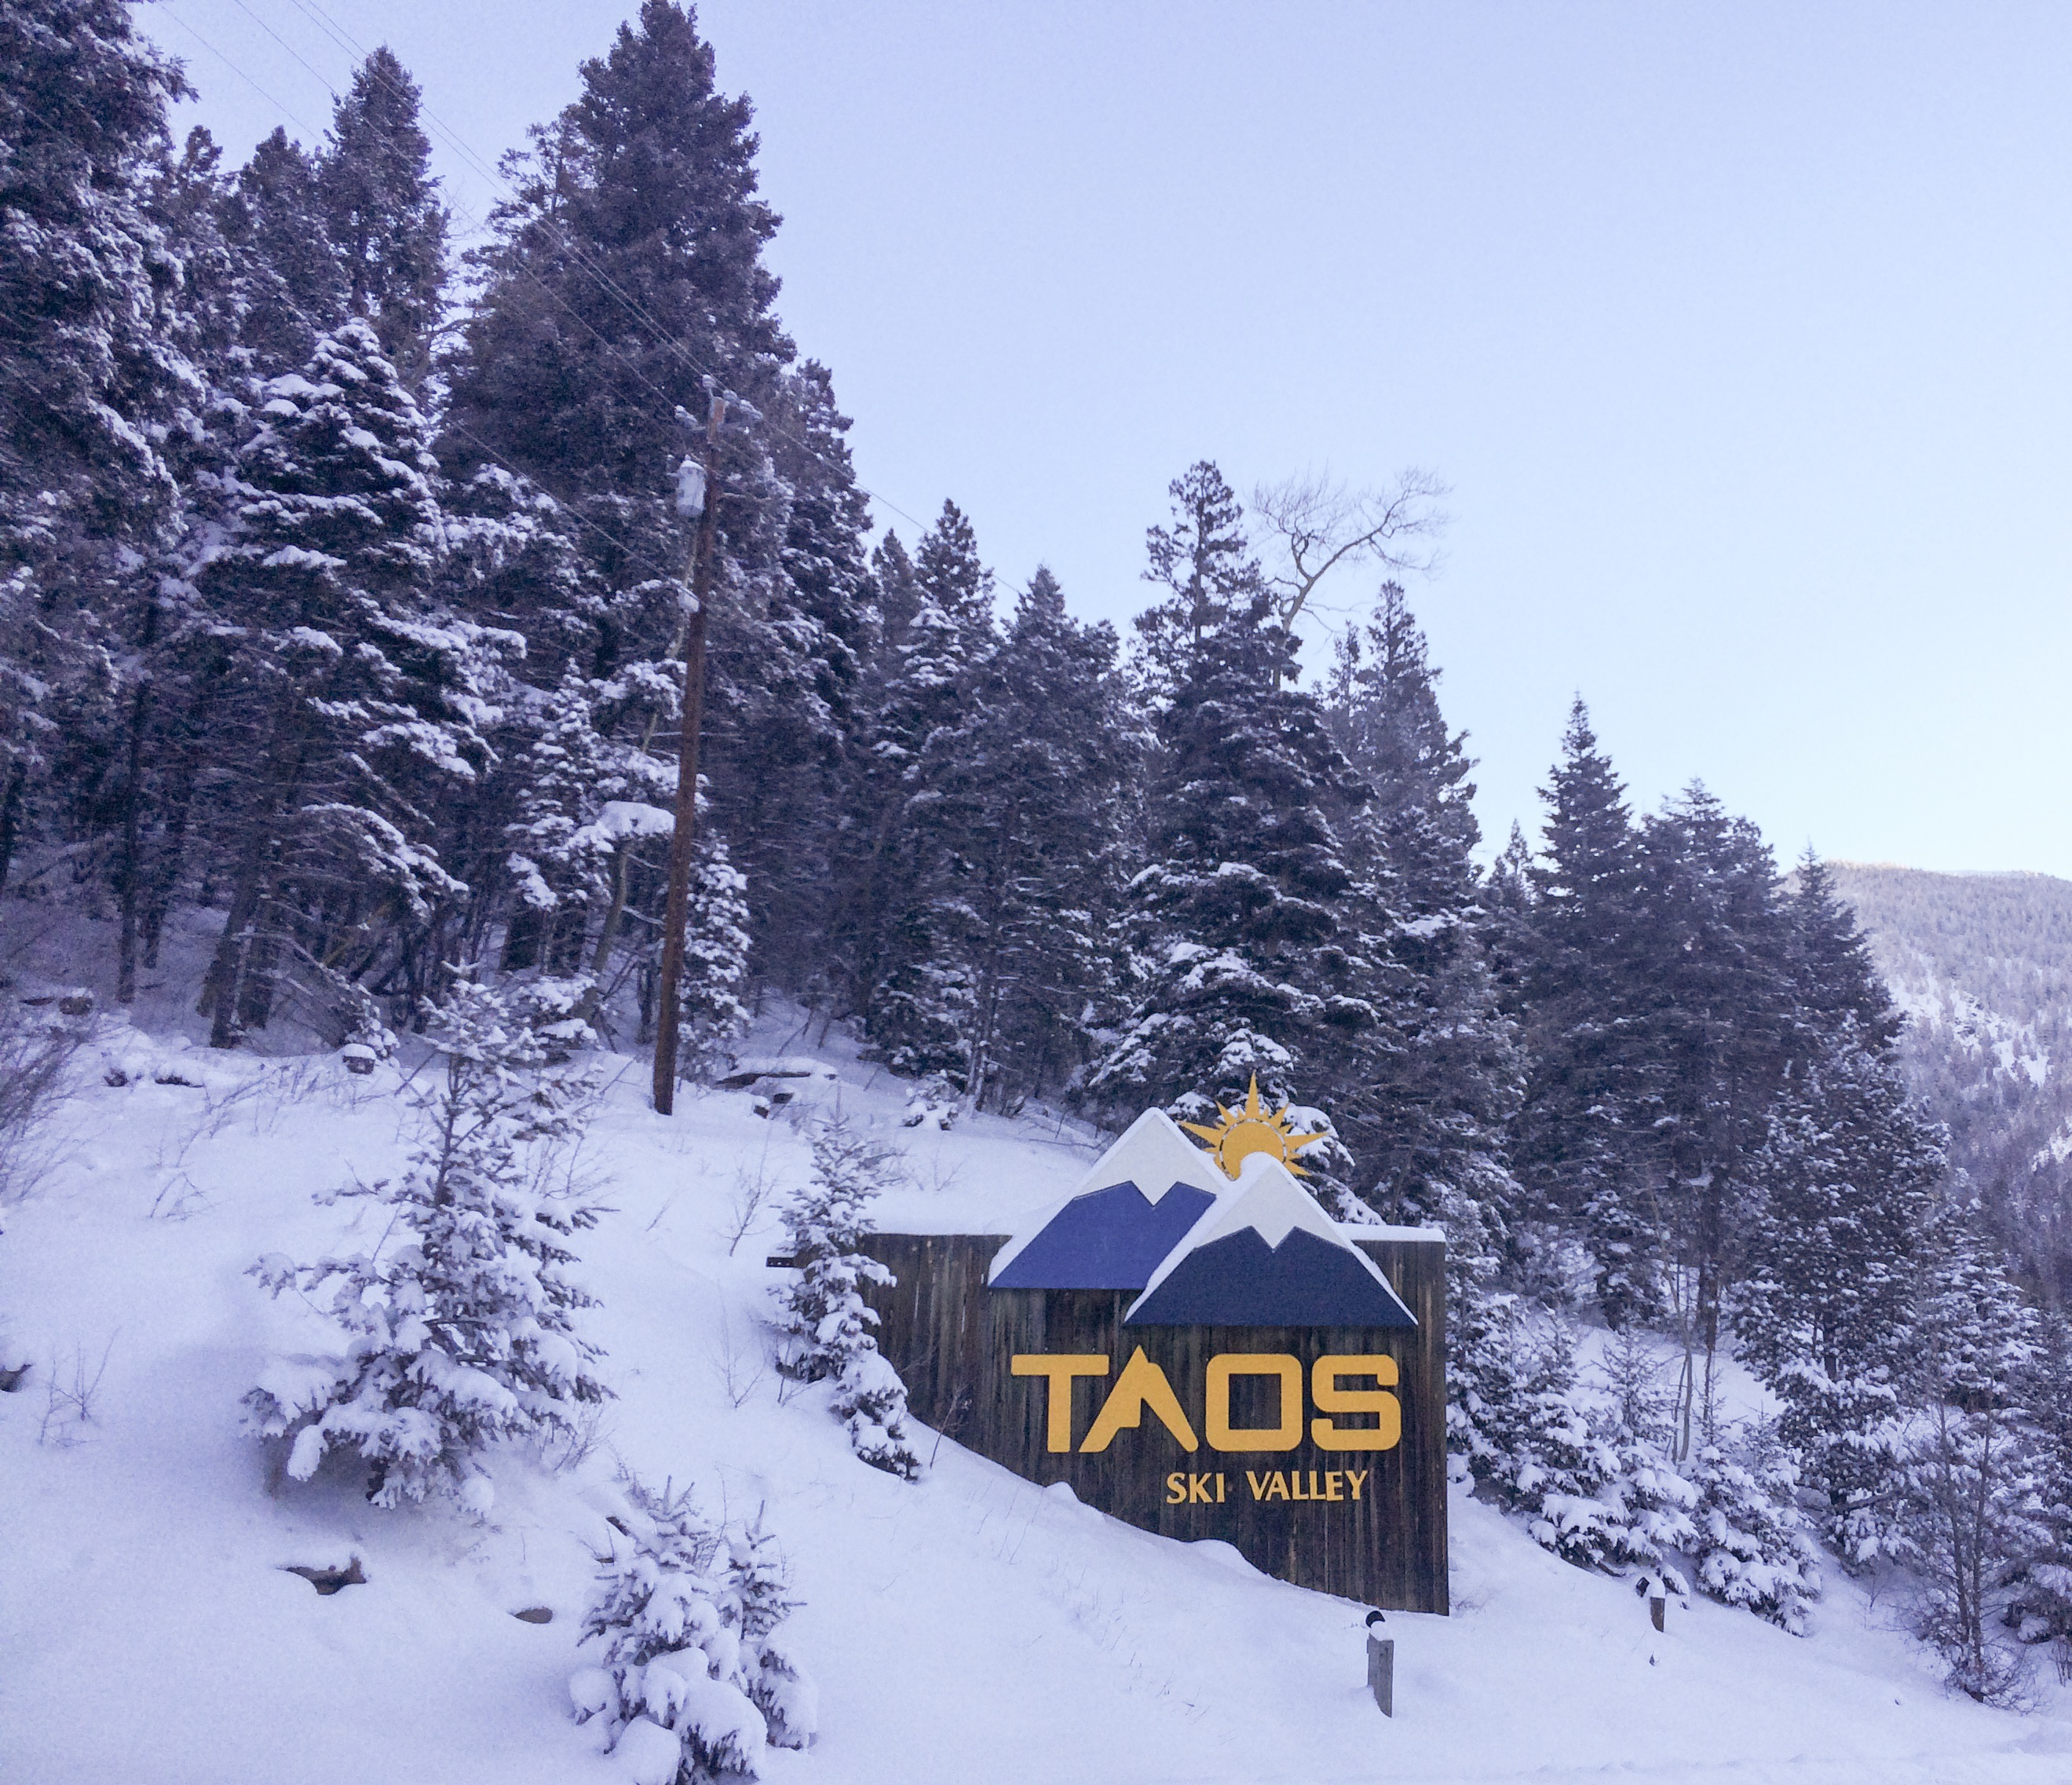 taos ski valley buddhist singles Taos is an art colony, a world-class ski resort and a place of convergence – of culture, of opposites, of like minds and new perspectives from the edge of the rio grande gorge, the view of taos and its towering mountain backdrop is simply spectacular.